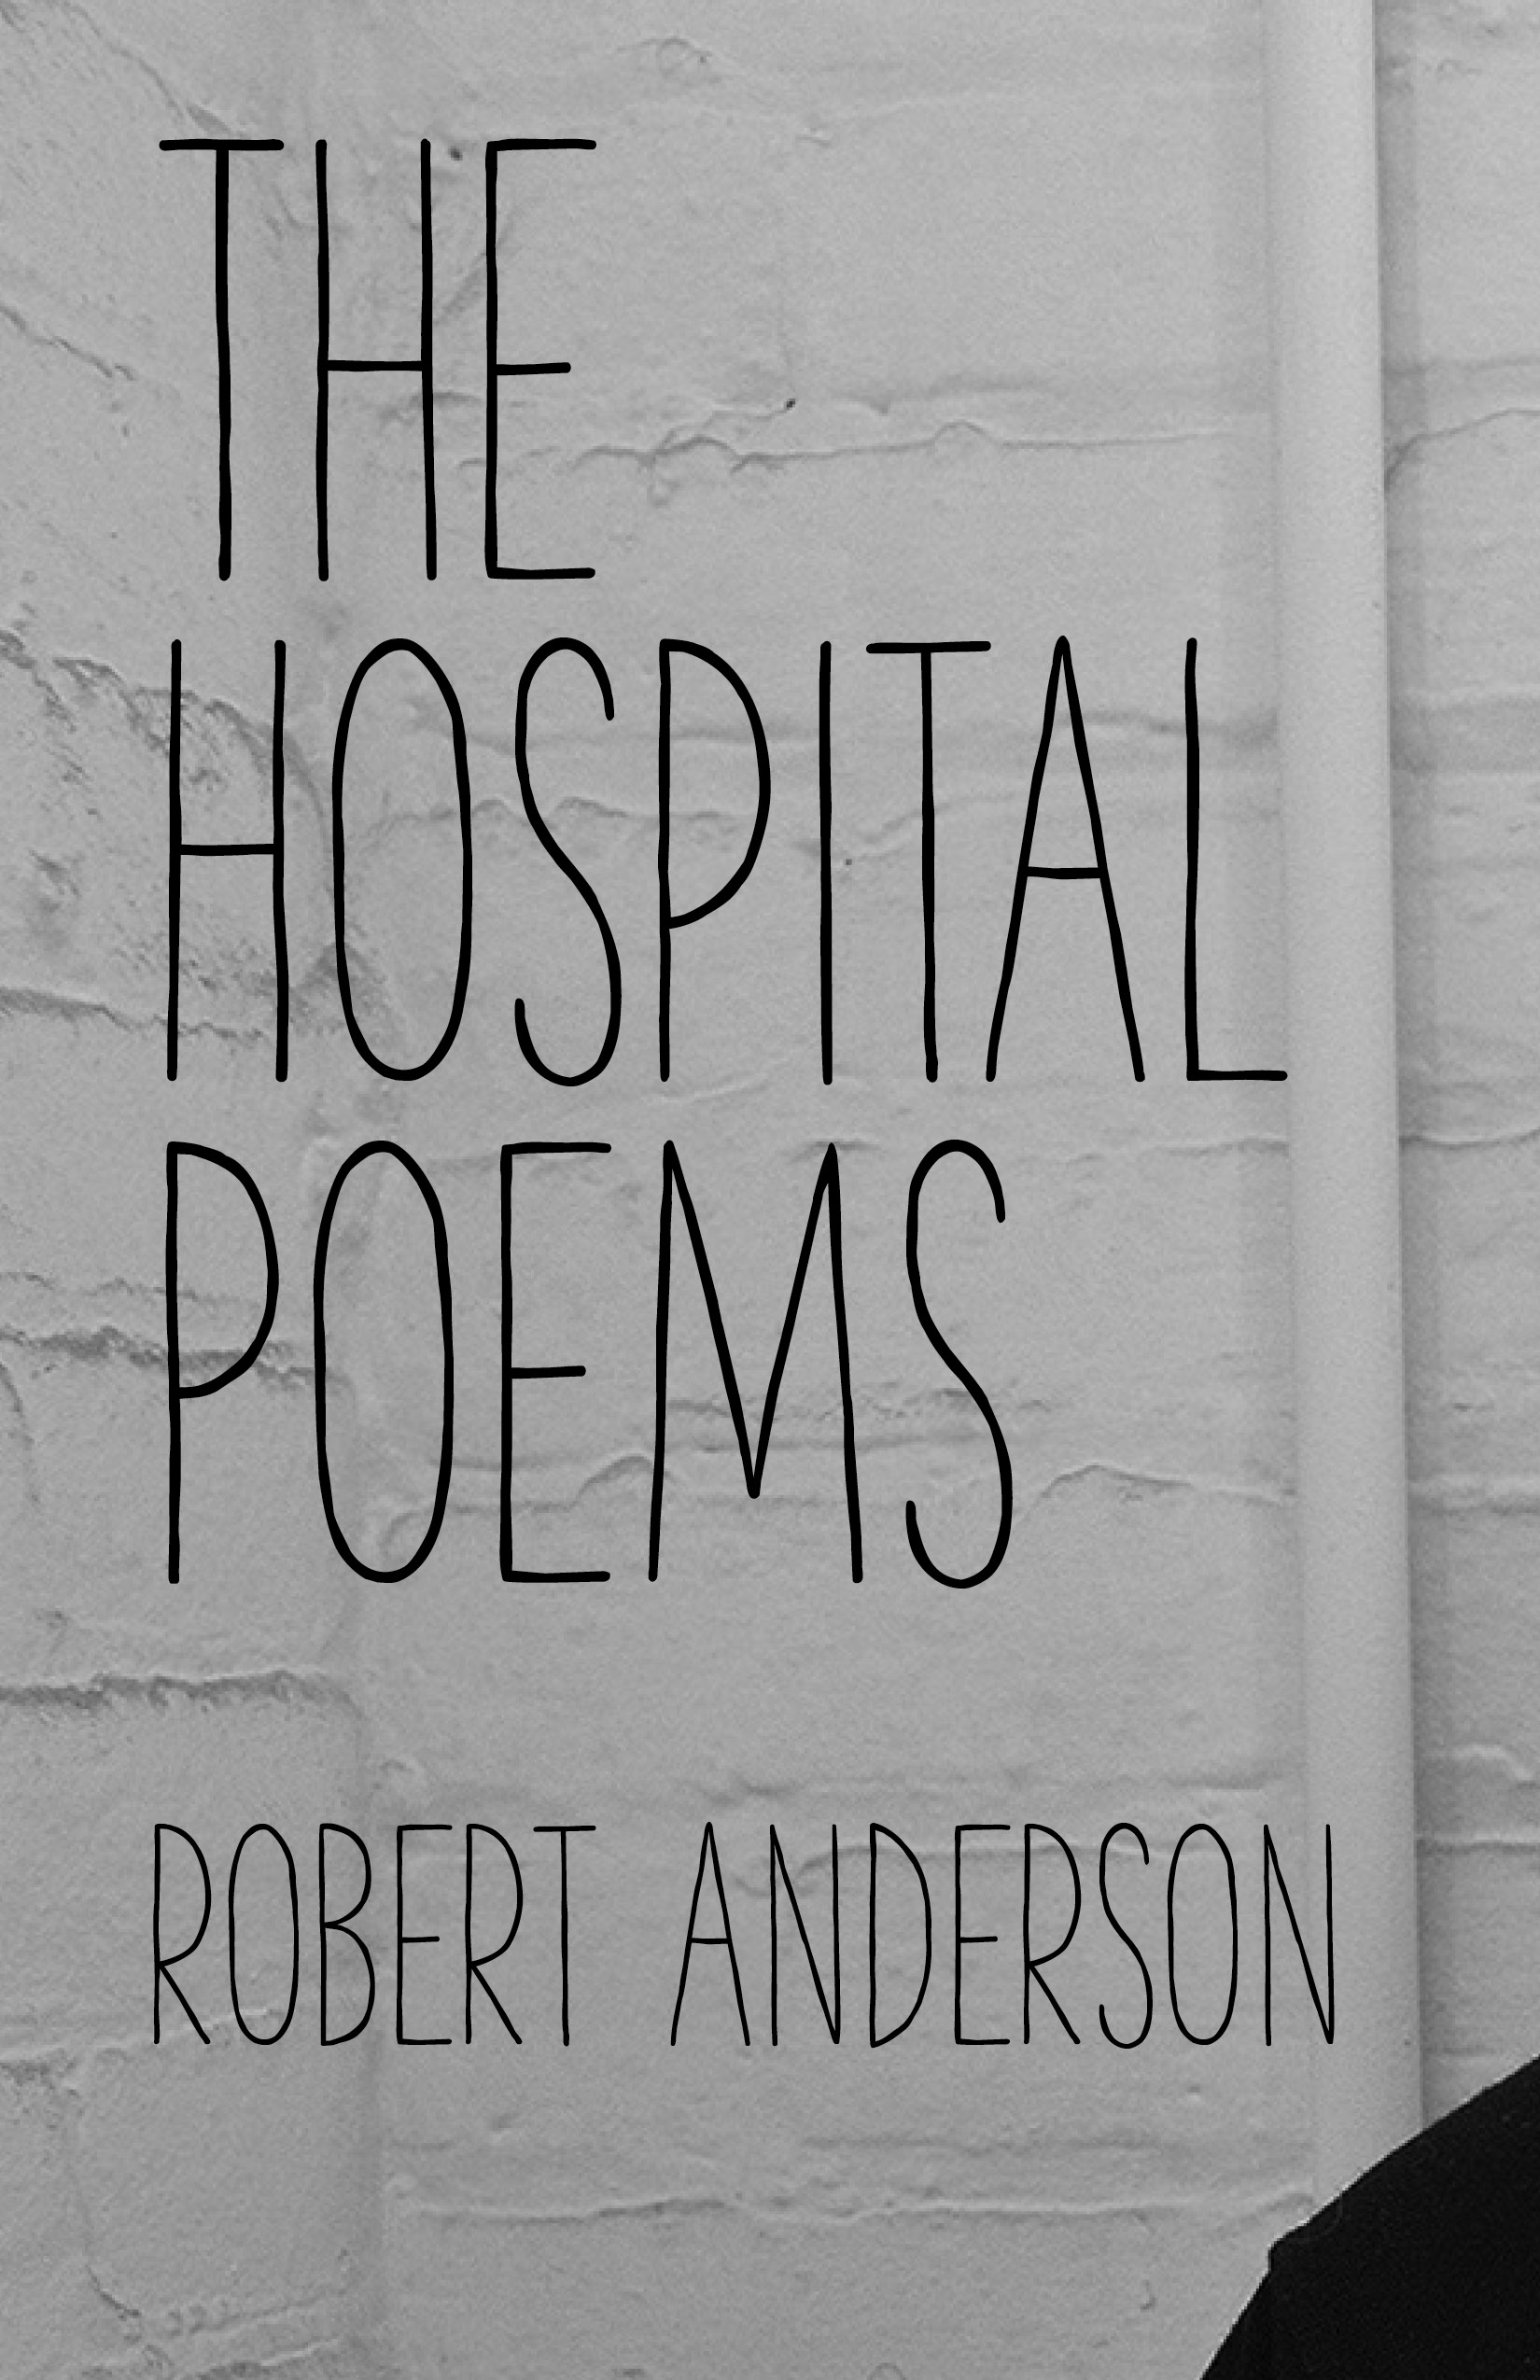 the hospital poems by robert anderson bookthug ca